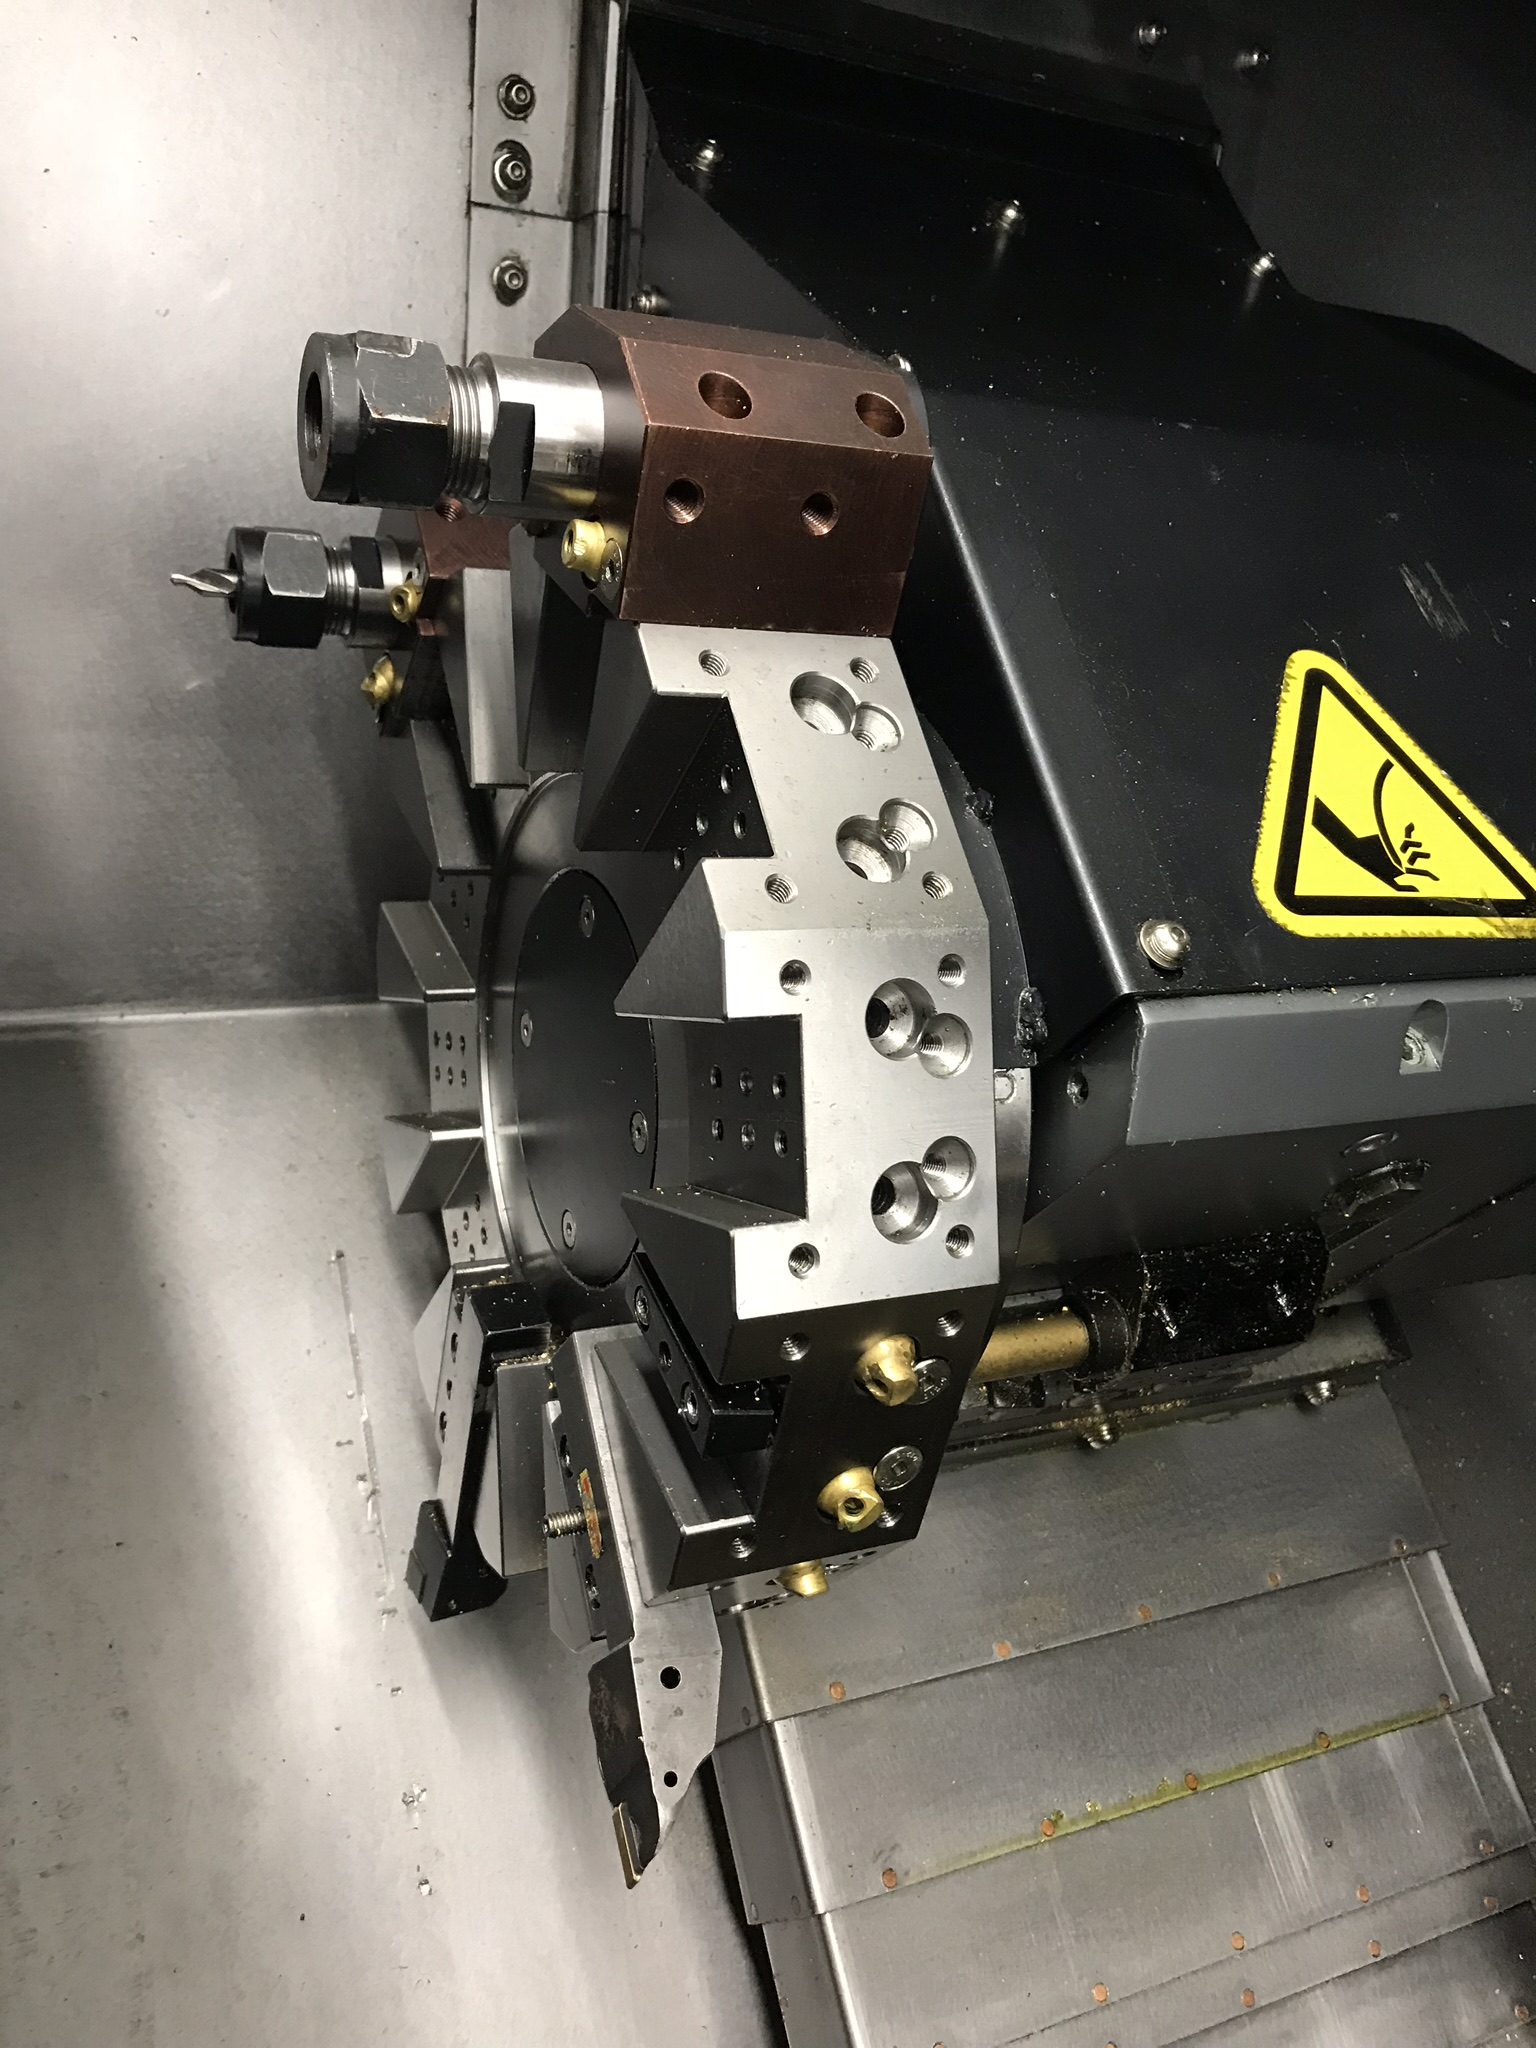 Hurco TM-6i CNC Lathe, Winmax Classic Package, Rigid Tap, Renishaw Presetter, Chip Conv, 400 Hours! - Image 7 of 13